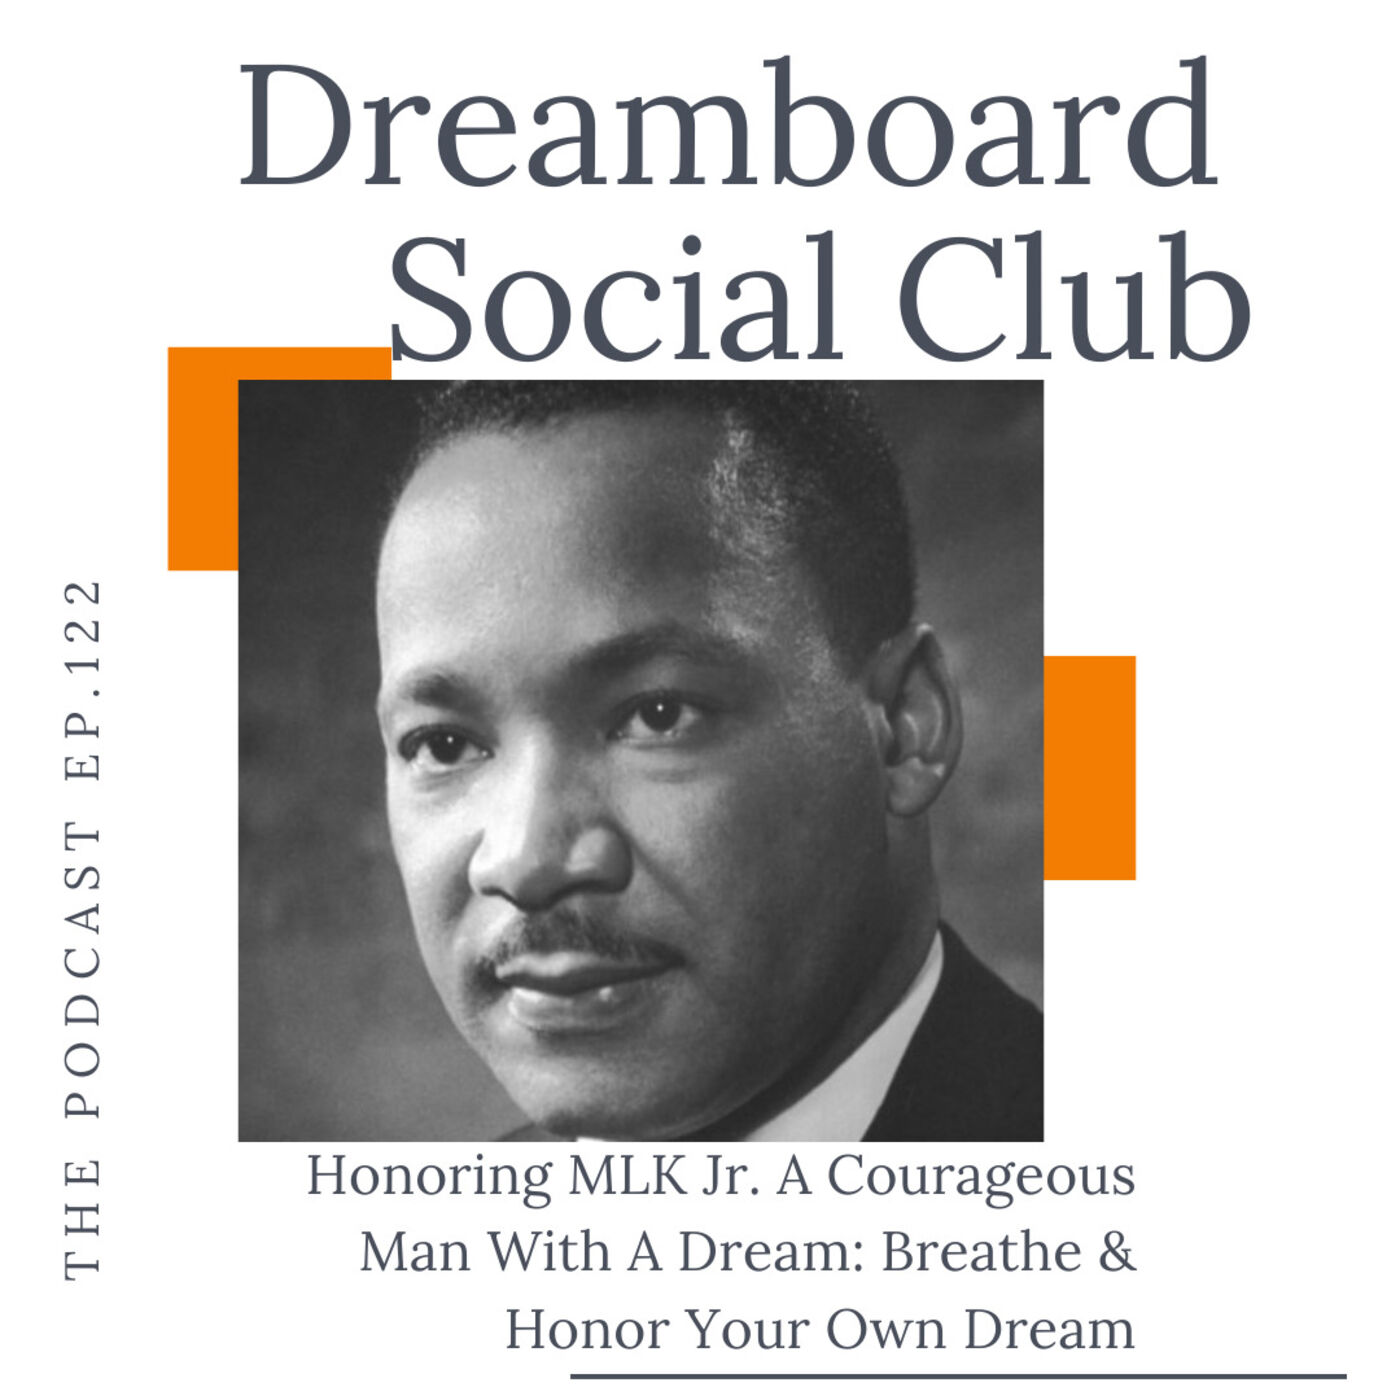 Honoring MLK Jr. A Courageous Man With A Dream: Breathe & Honor Your Own Dream